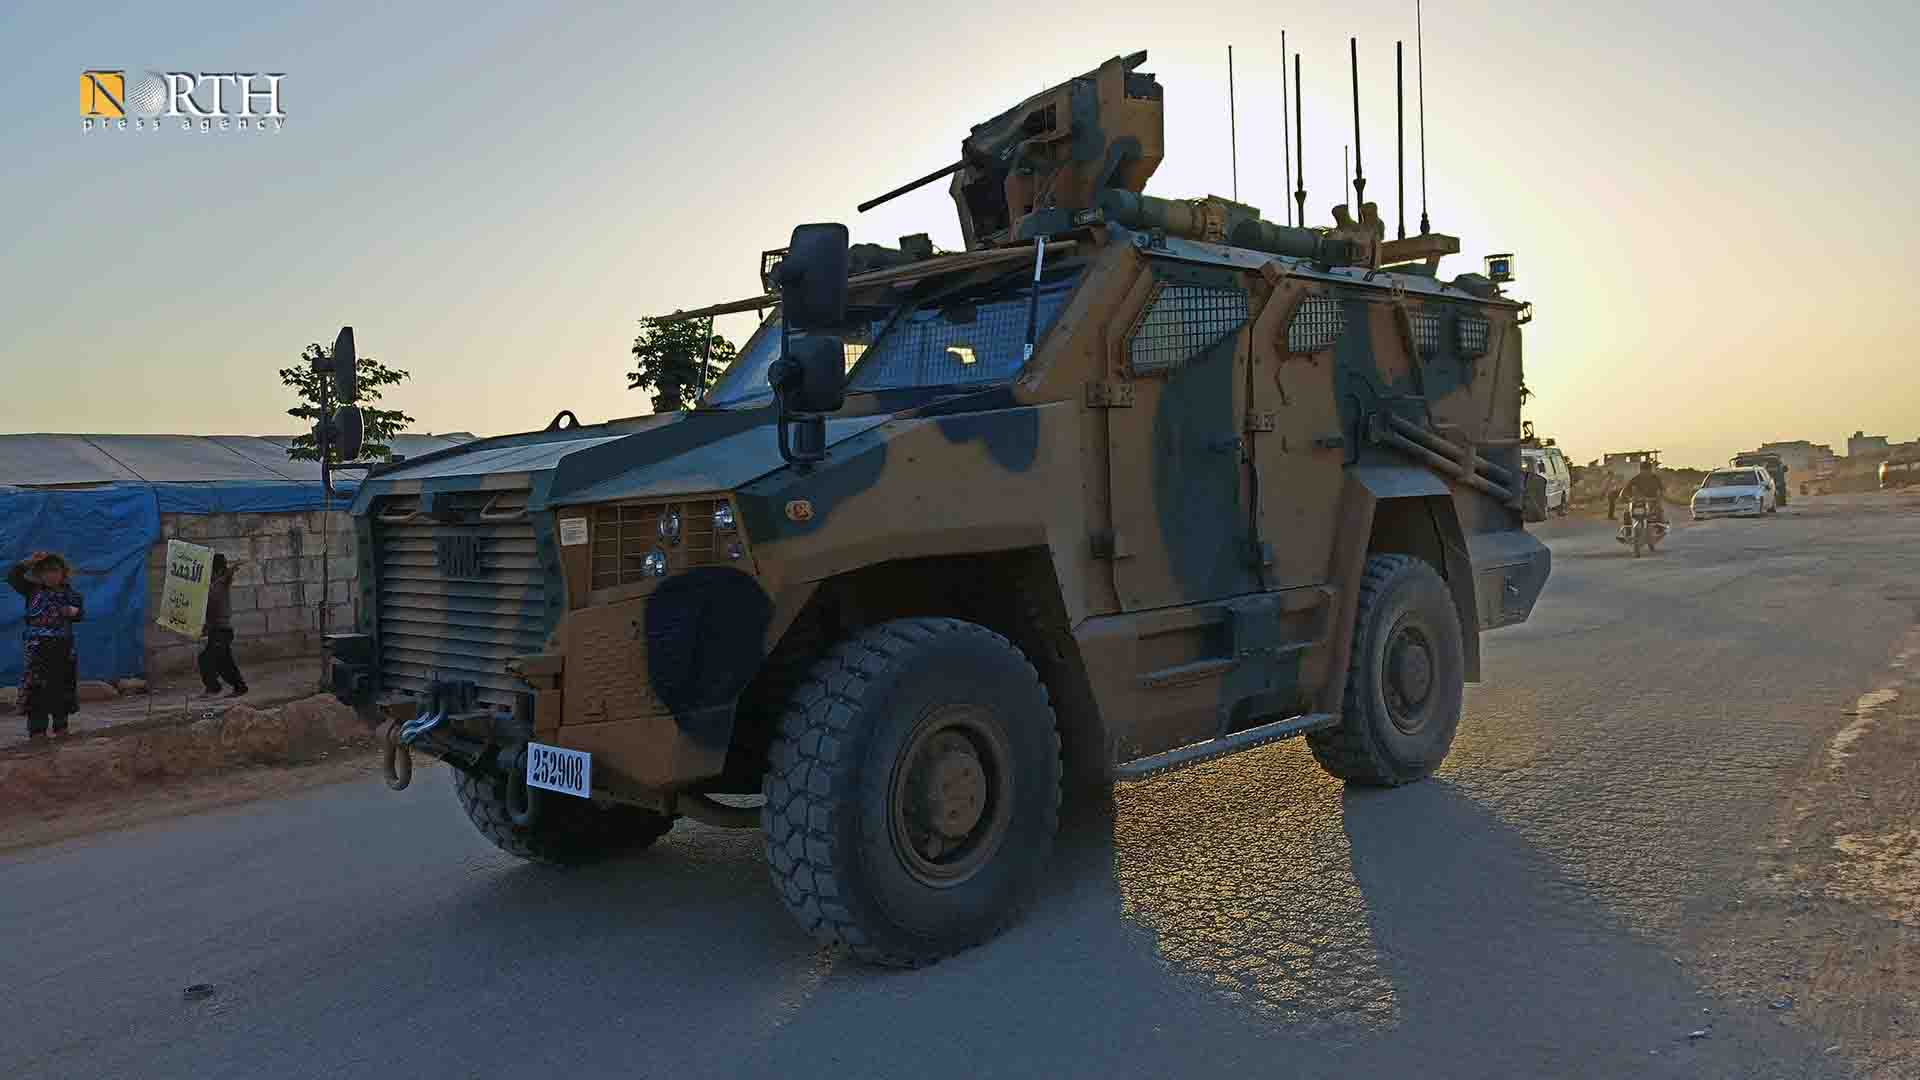 Turkish military armor on the M4 highway, North Press